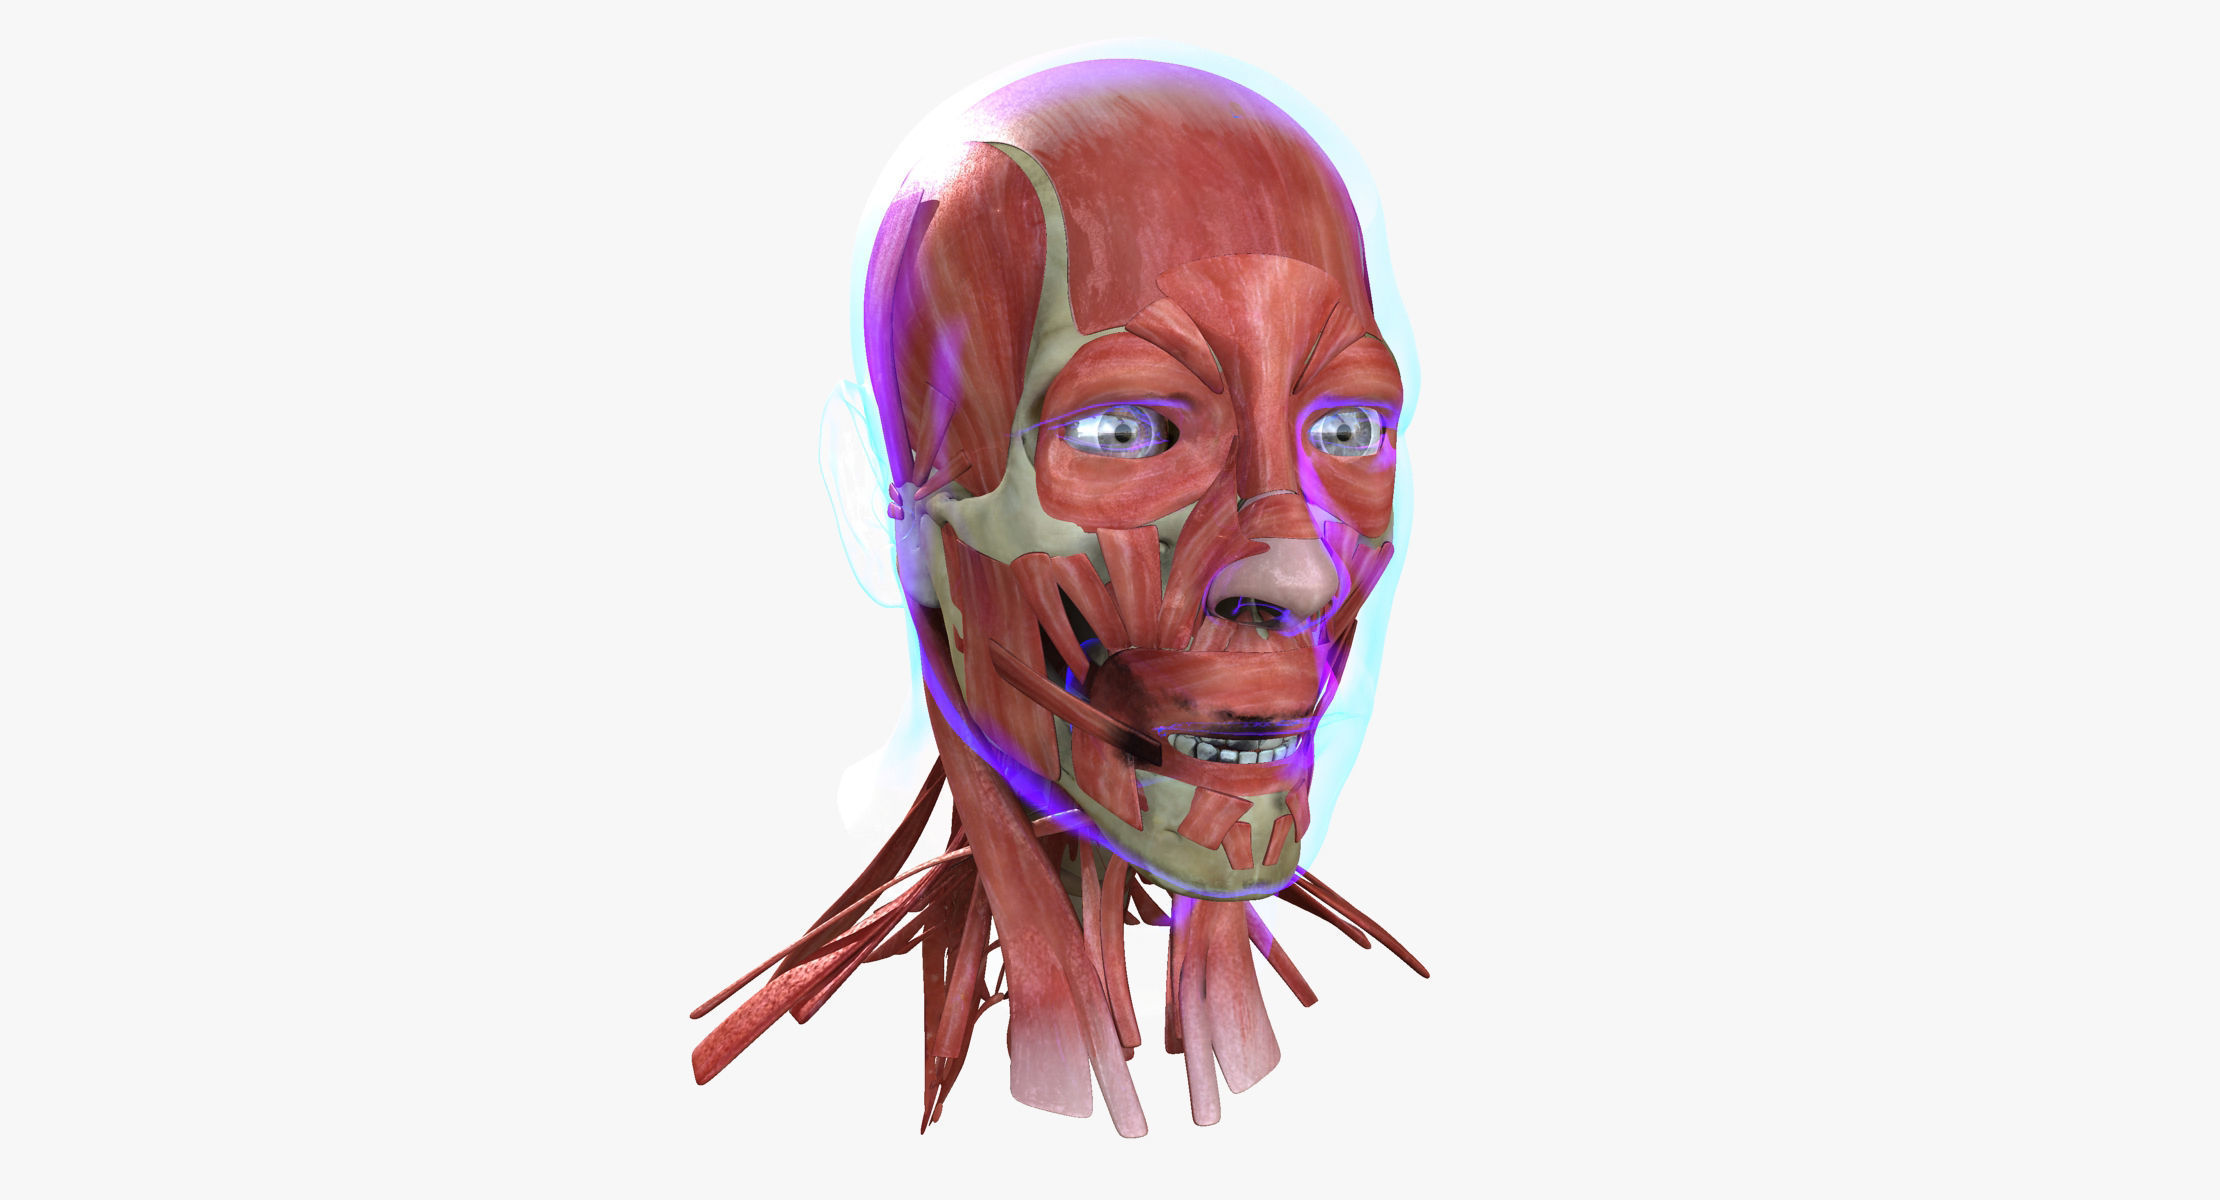 3d Model Human Face Muscle Anatomy Medical Edition